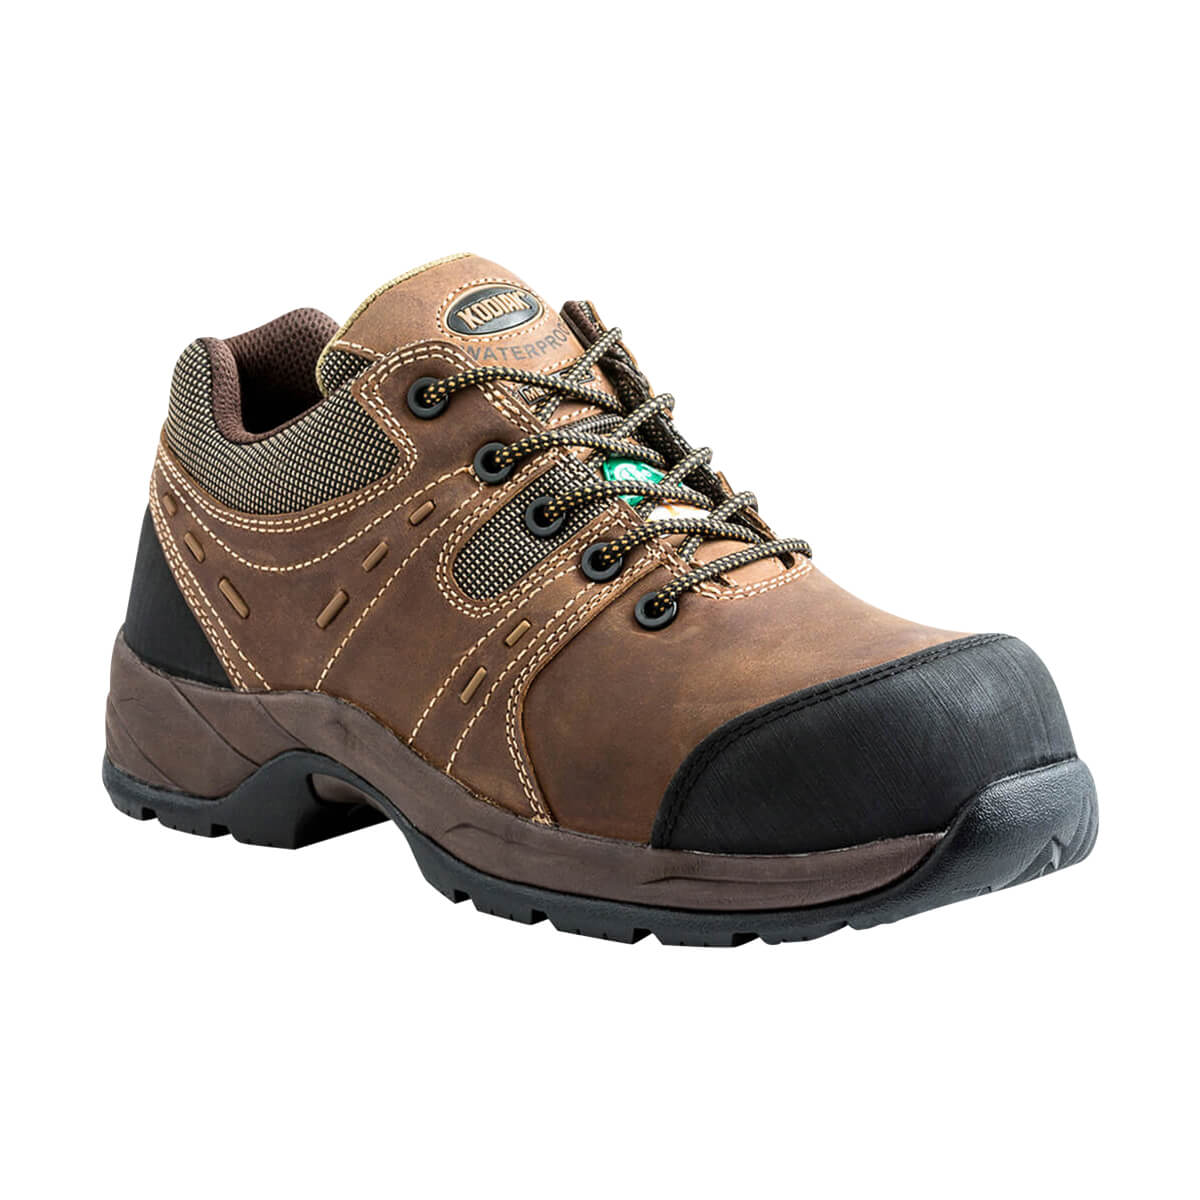 Kodiak Trail Shoe - Brown